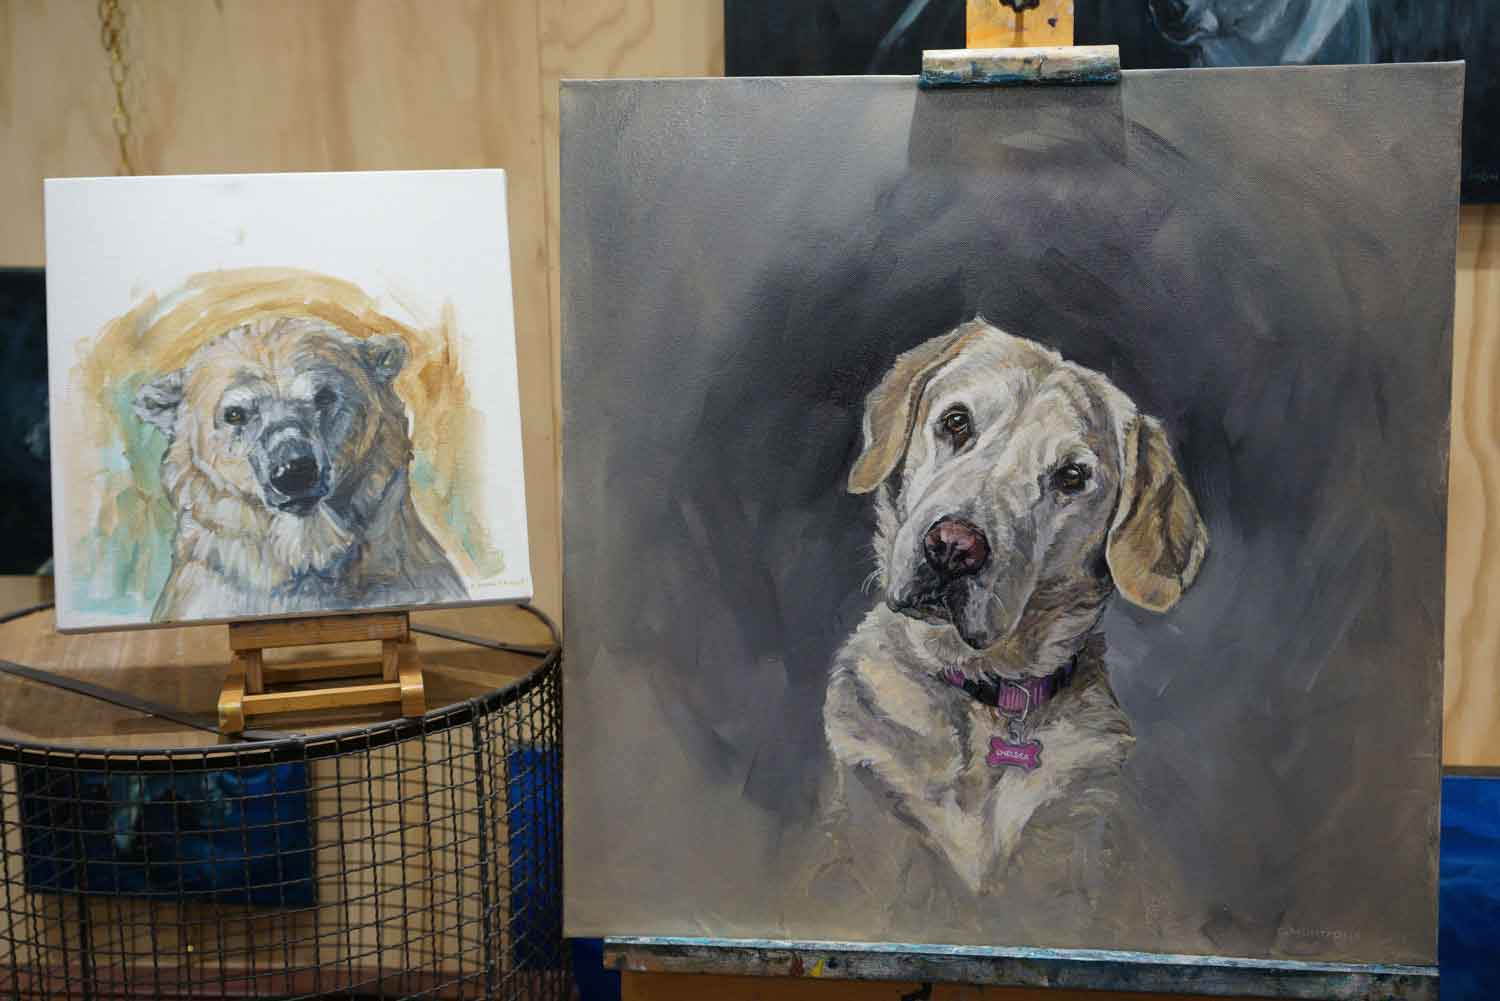 Wistful Bear      and the  dog portrait  it  inspired  side by side. ©Christine Montague